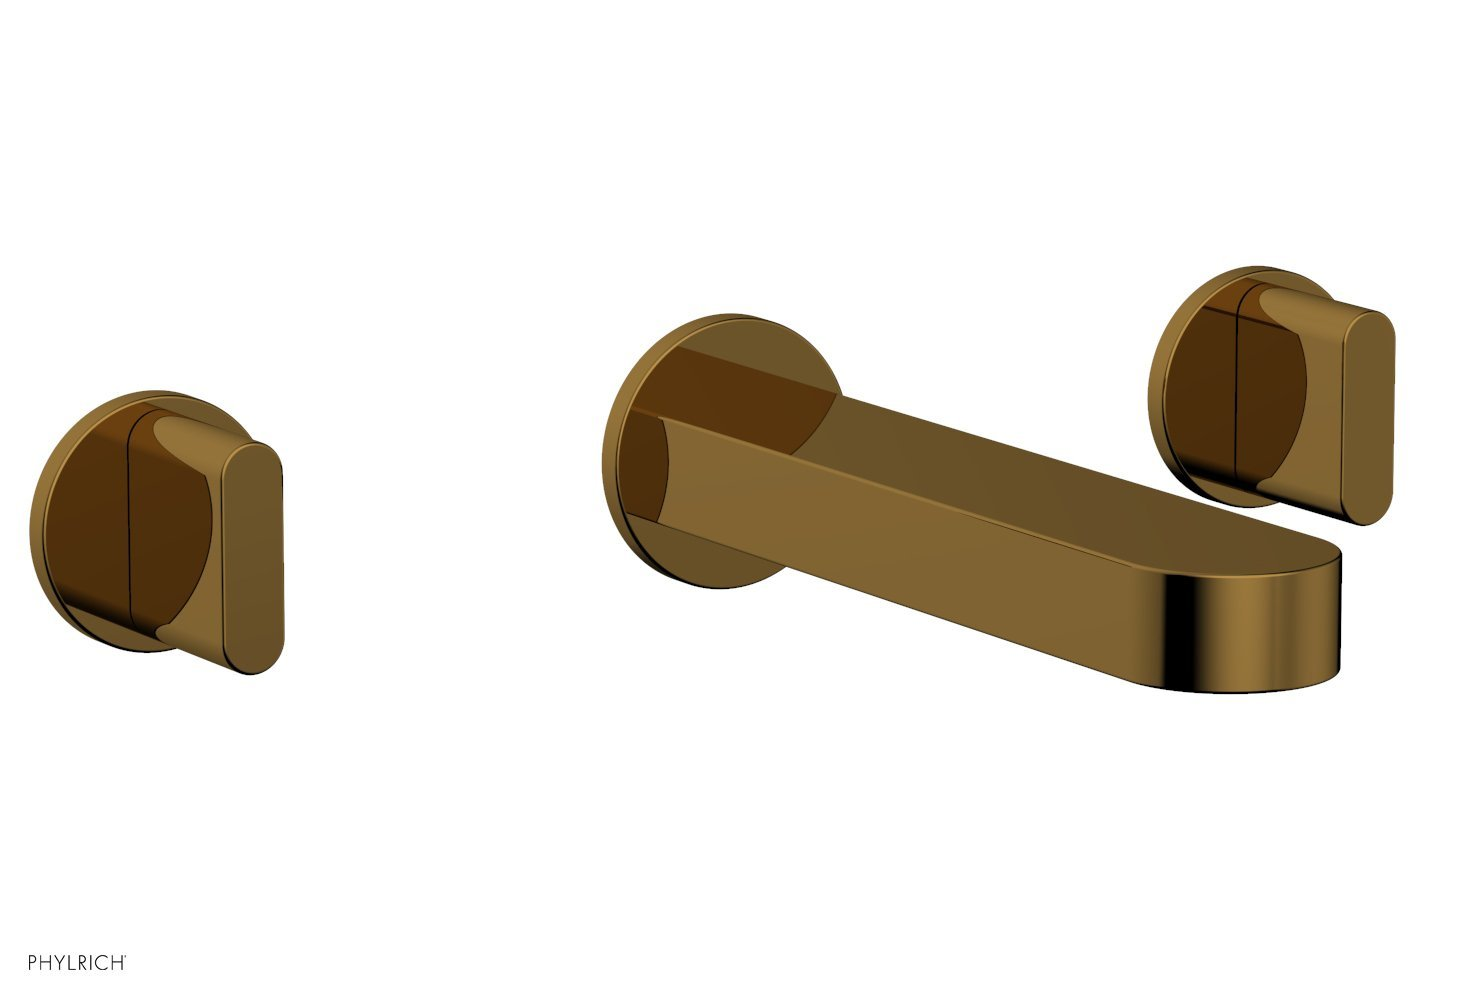 Phylrich 183-11-002 ROND Wall Lavatory Set - Blade Handles - French Brass